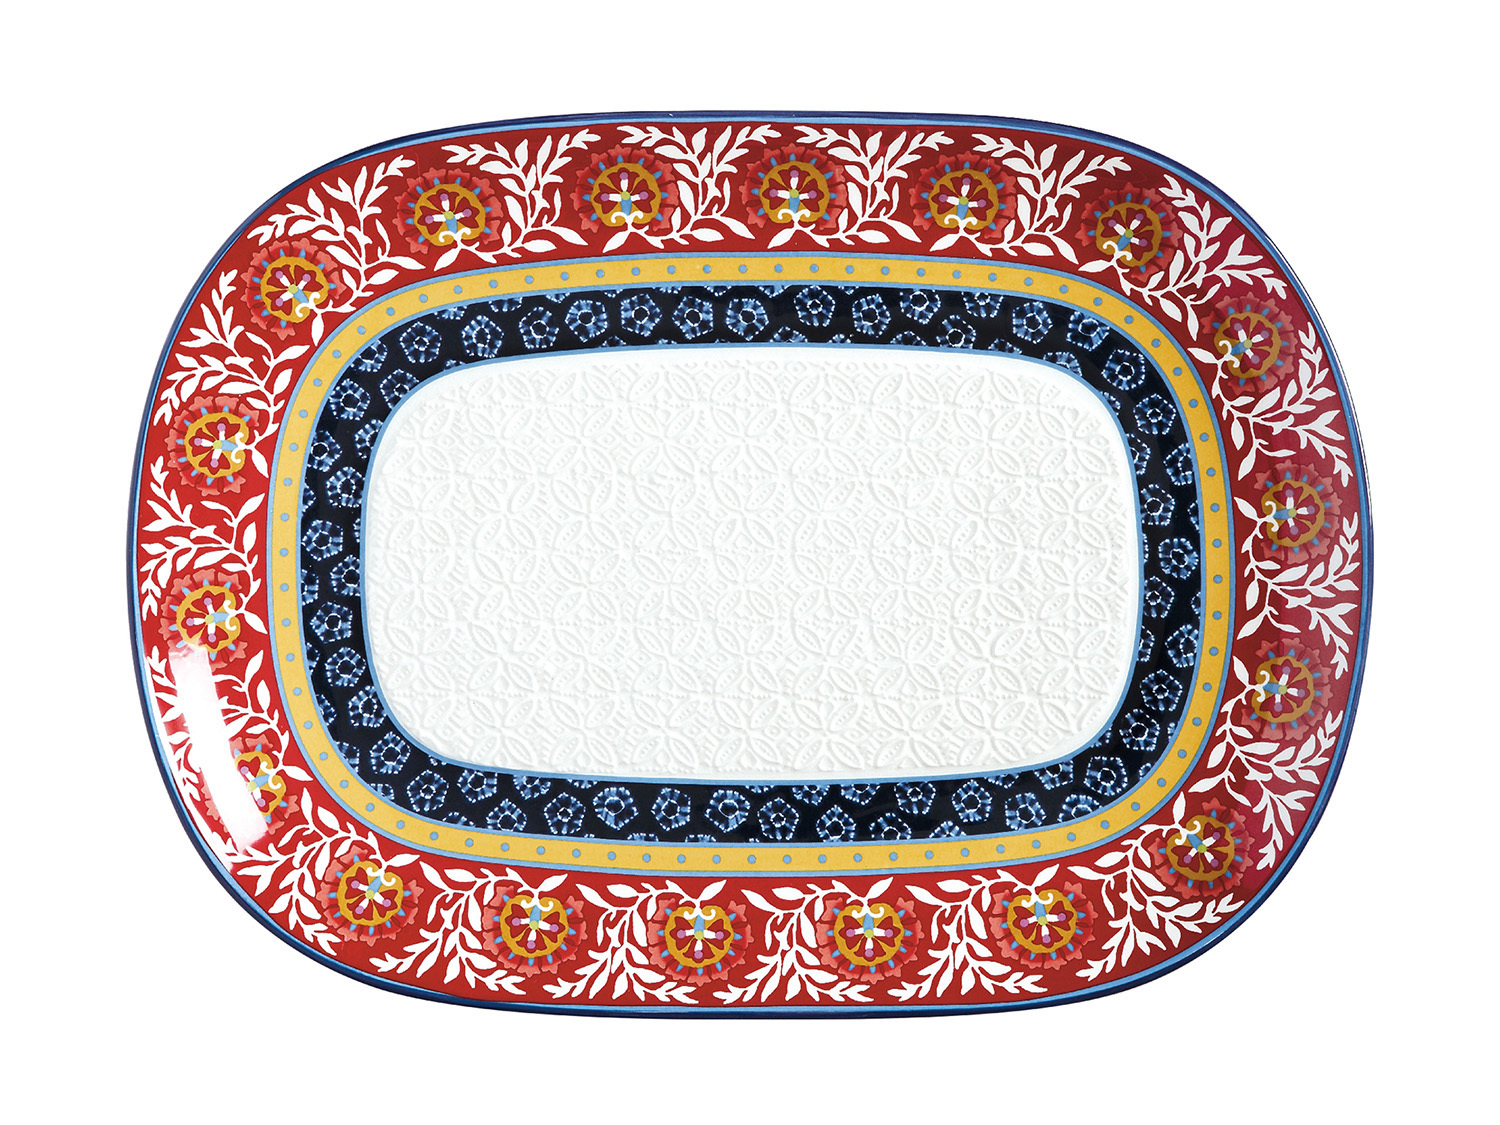 Maxwell & Williams Boho 45X33Cm Oblong Platter